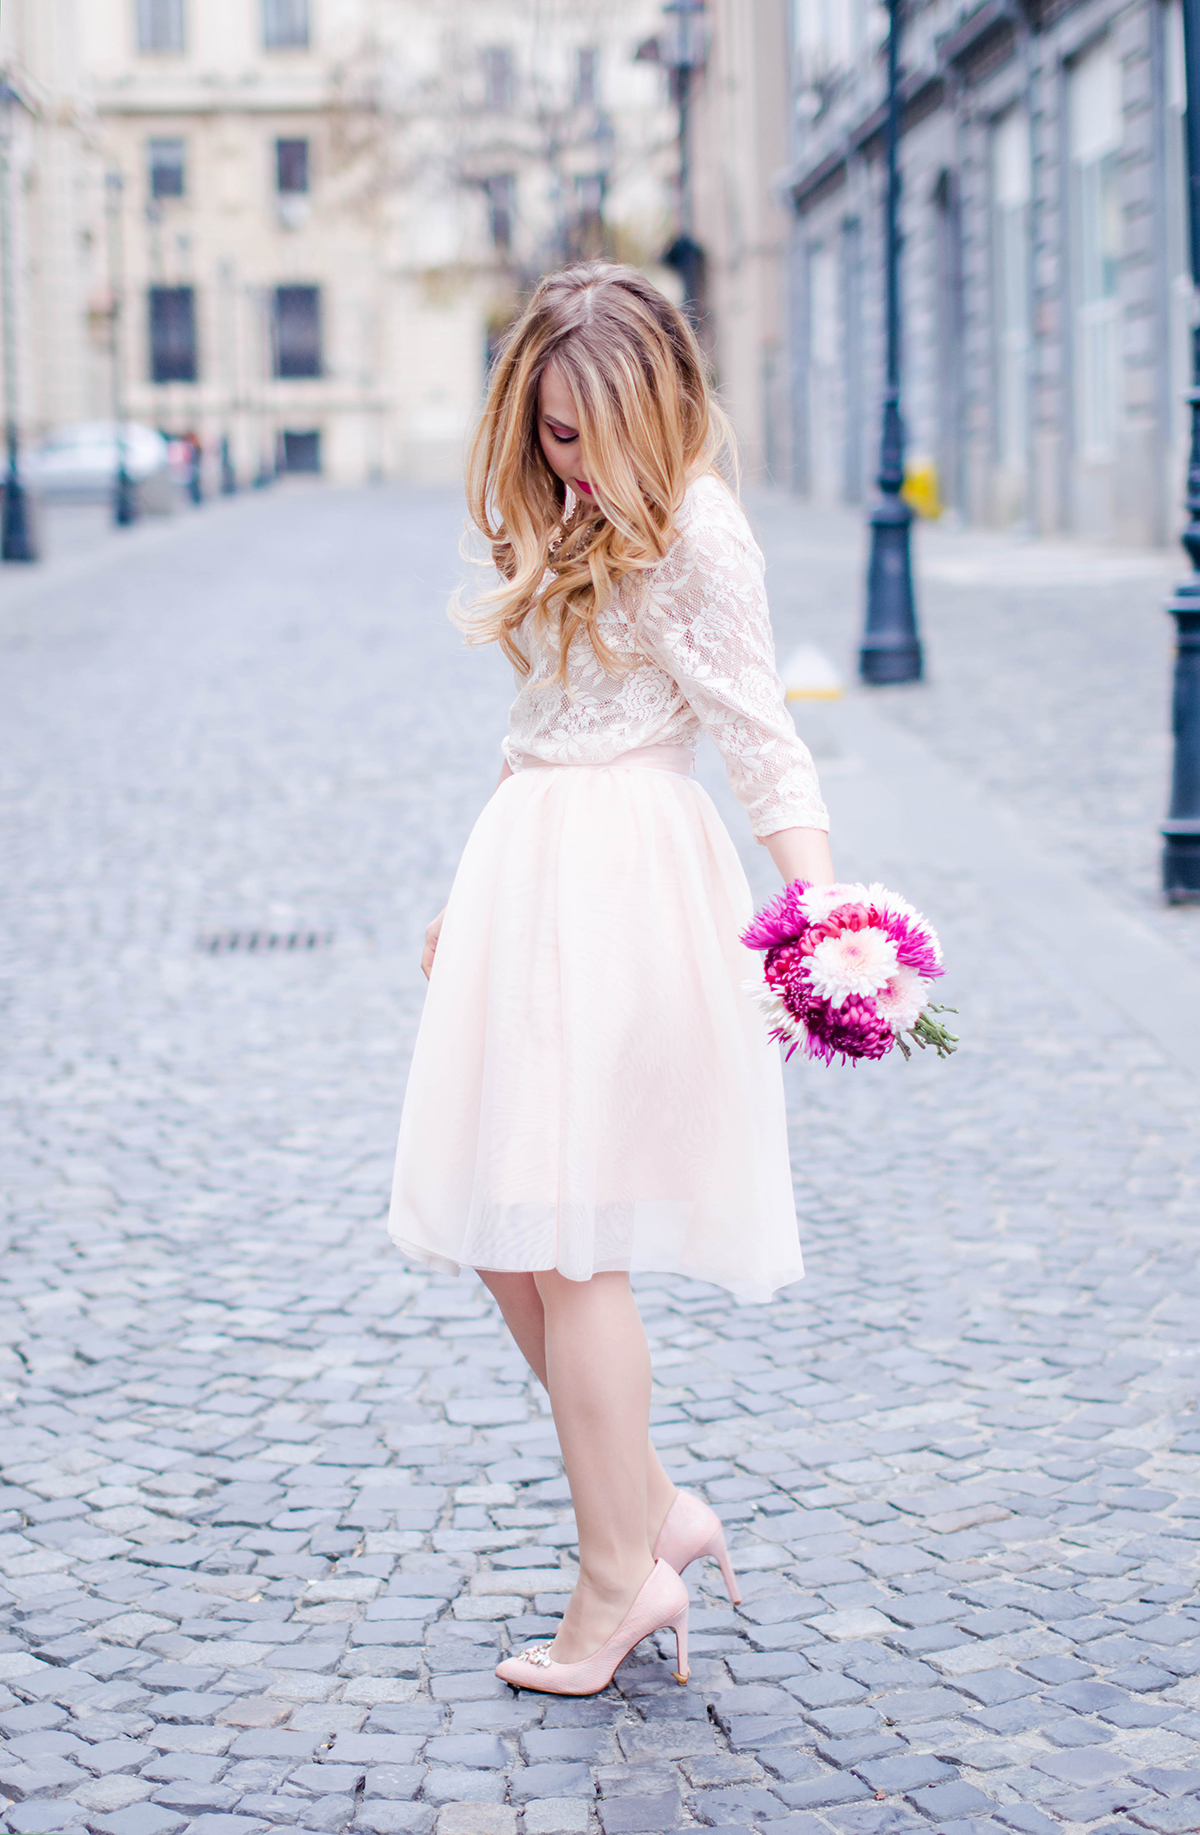 pastel-pink-tulle-skirt-lace-blouse-pink-flowers-feminine-outfit-embellished-pink-heels - 20